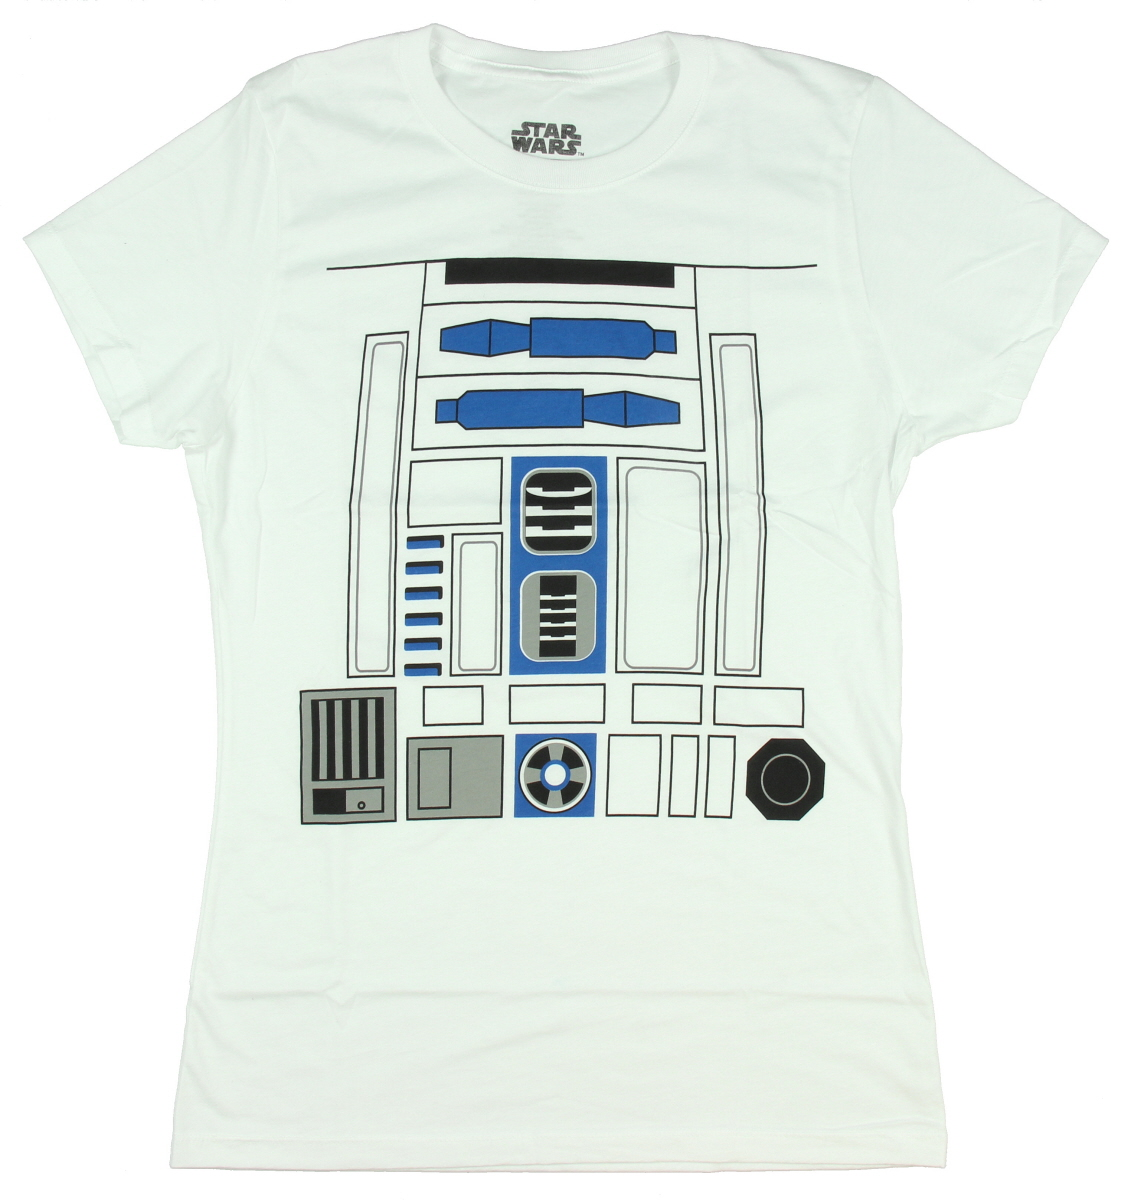 Star Wars I Am R2-D2 Juniors Costume T-shirt